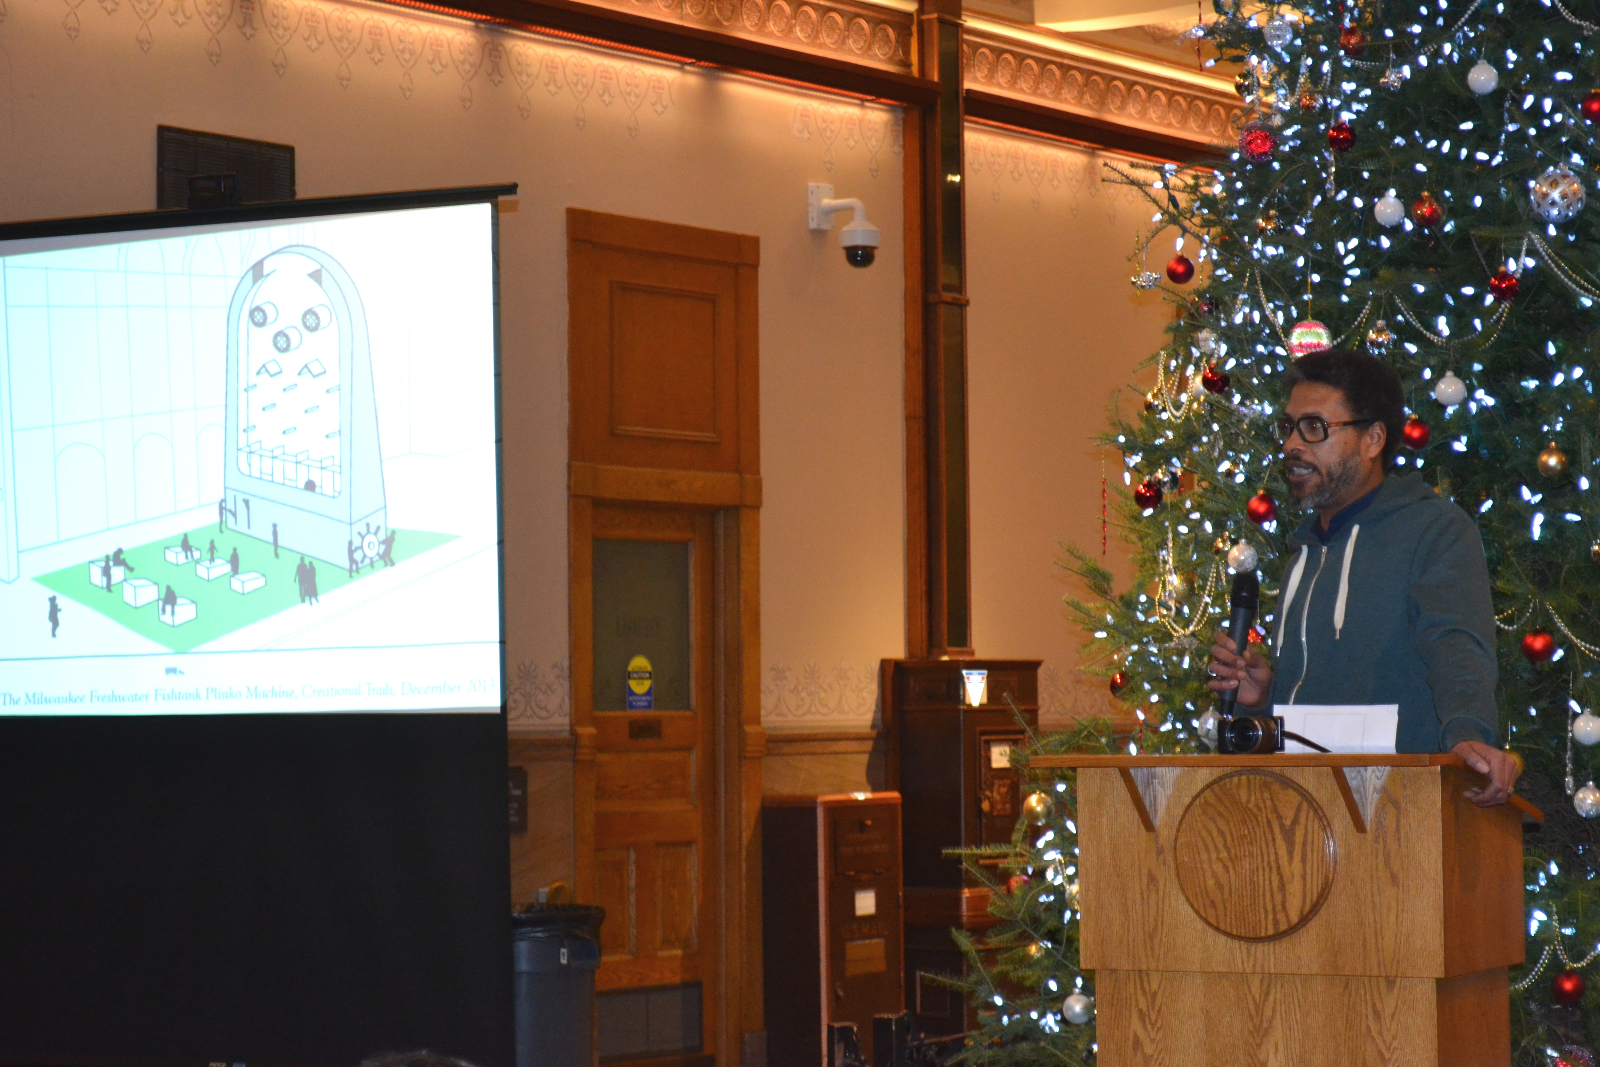 Milwaukee artist Reginald Baylor proposes building an oversize plinko-esque arcade game along the Avenue. The artist explained that he enjoys making references to childhood.